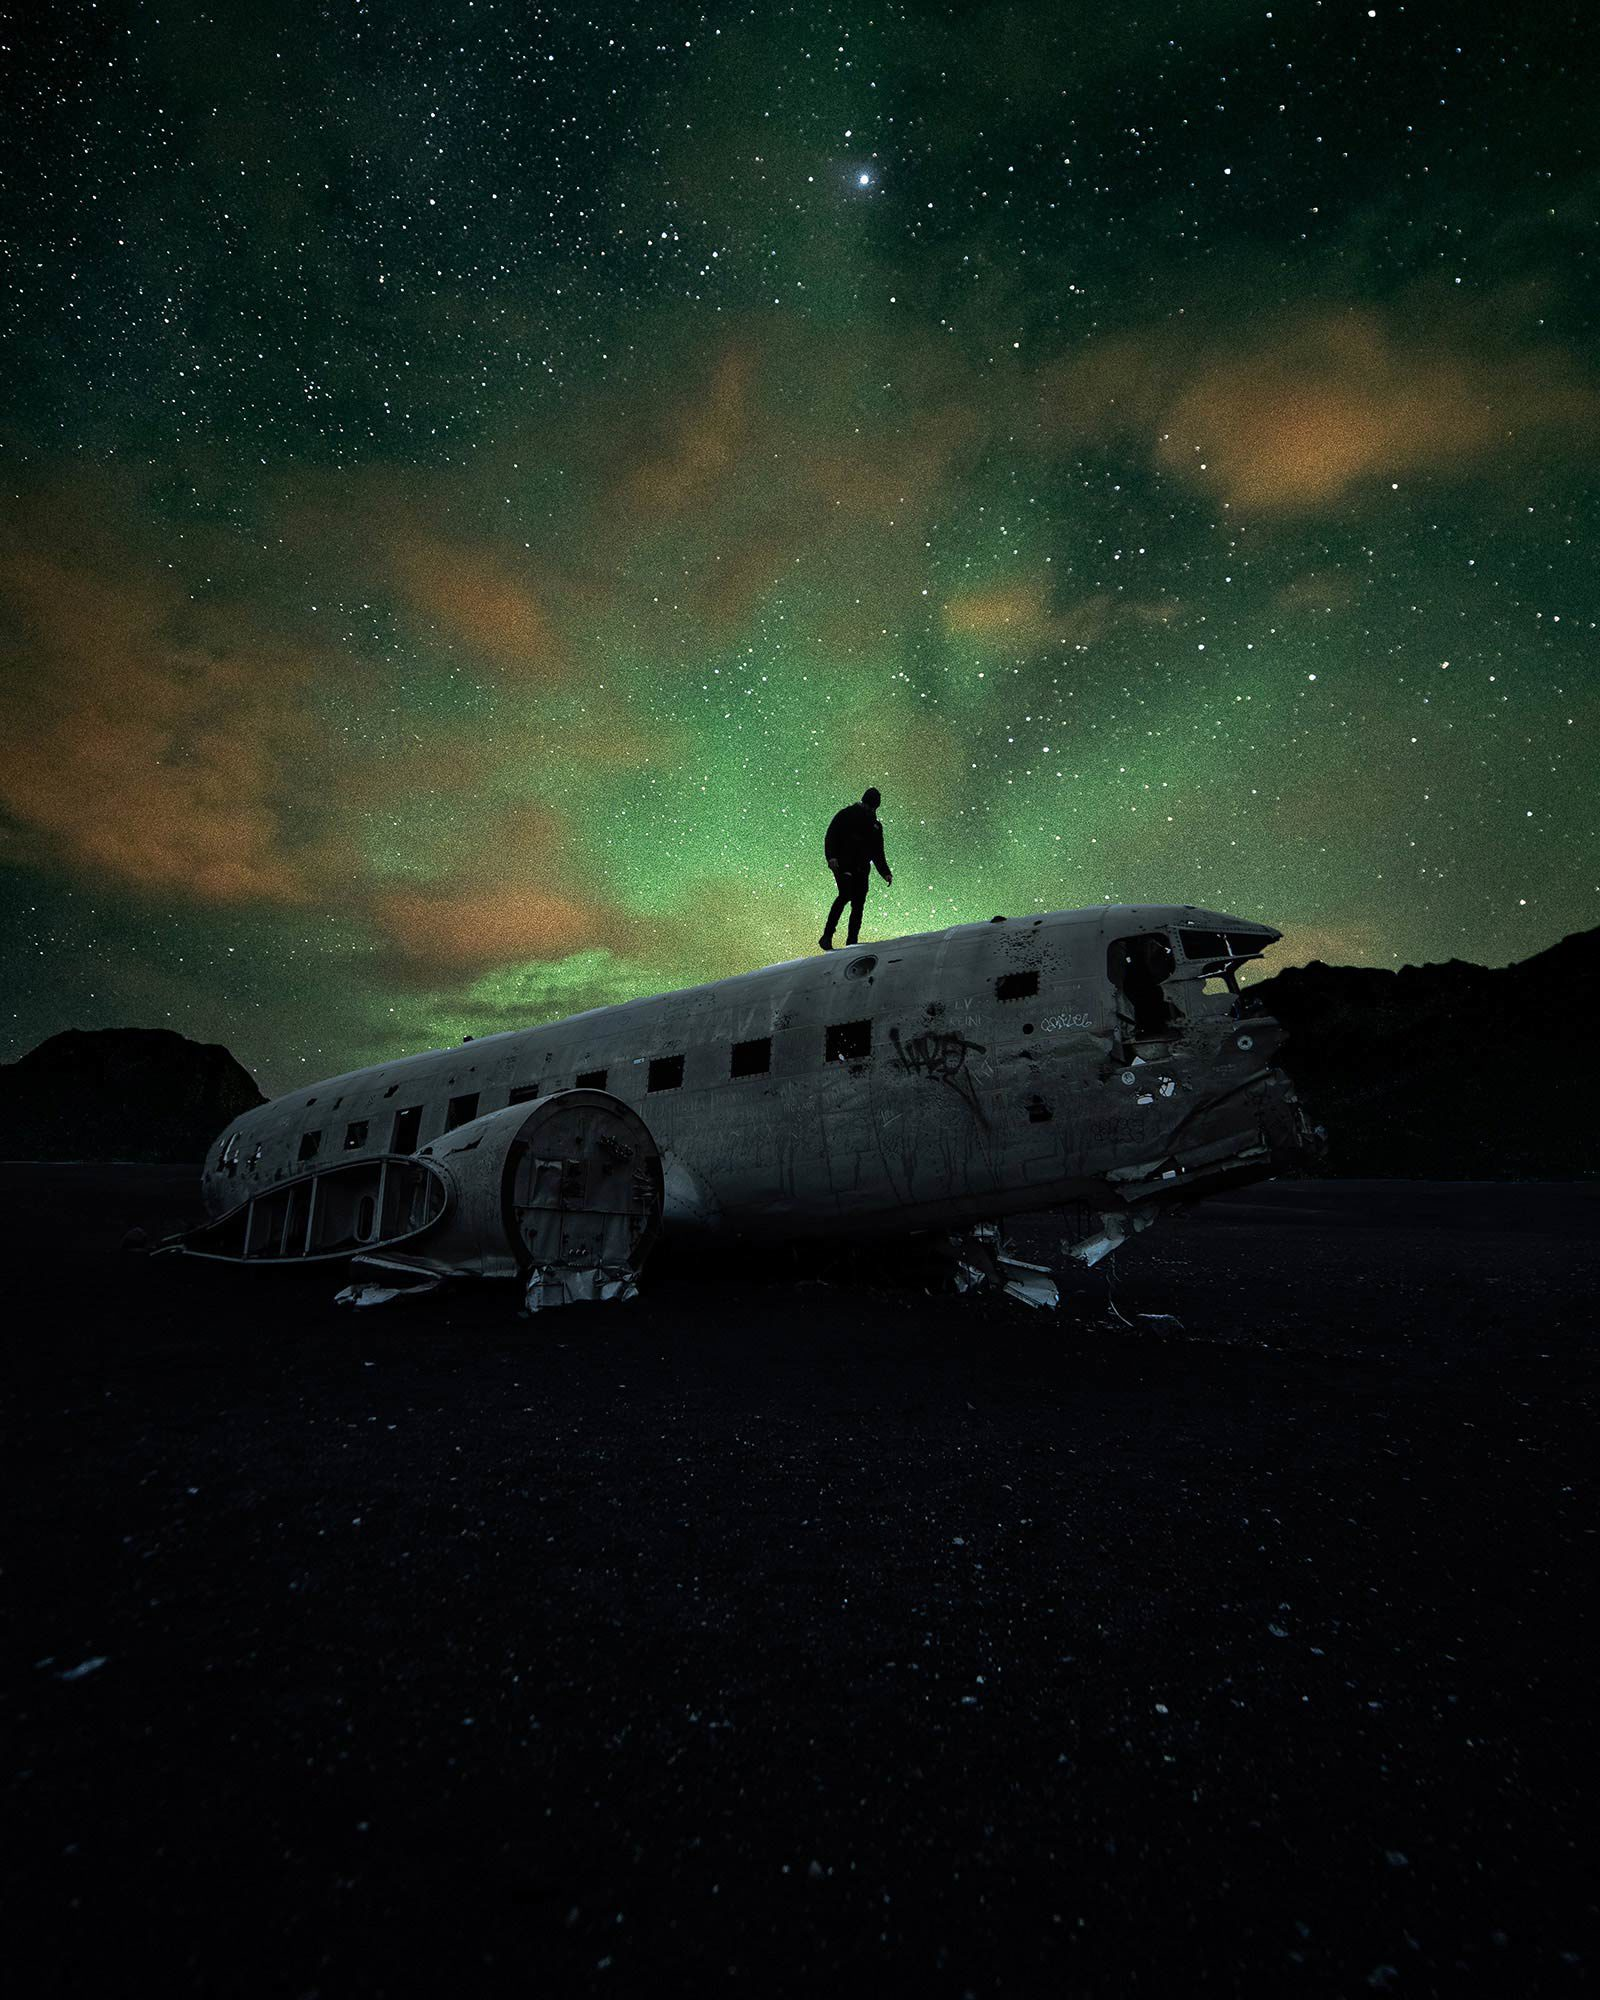 Person walking on crashed airplane under green starry sky.